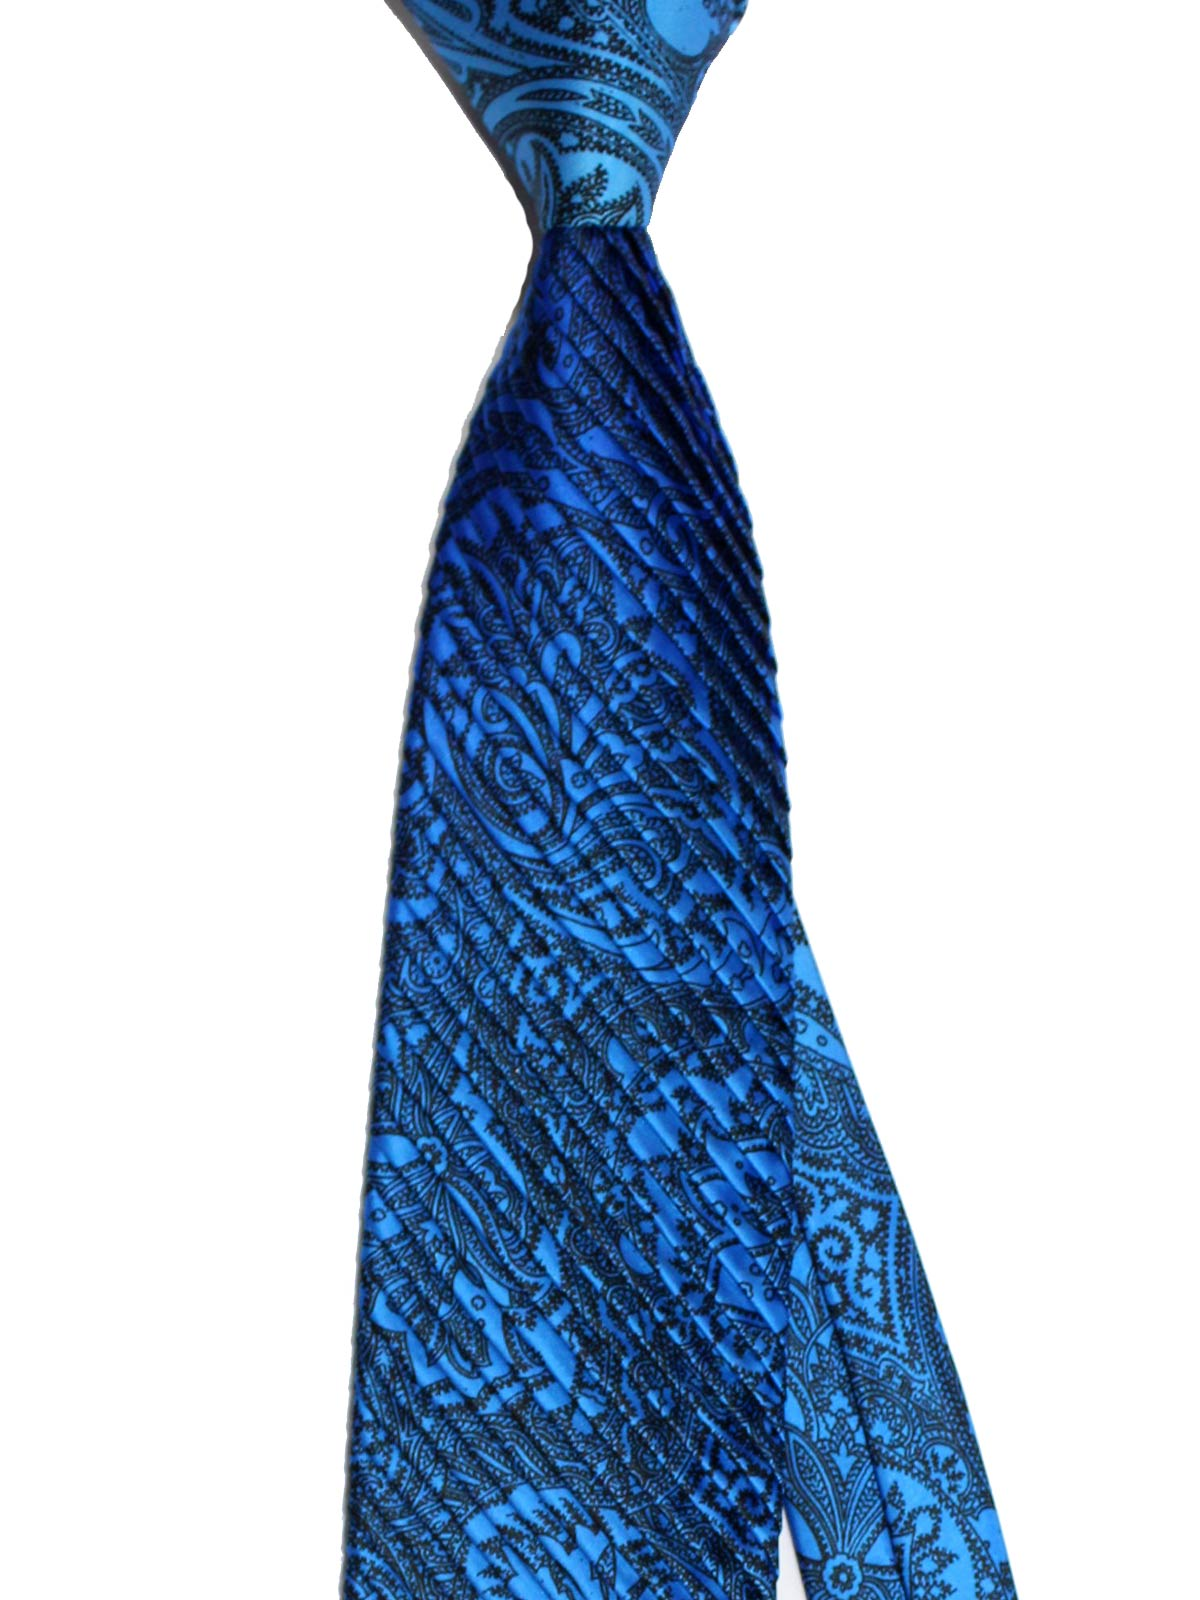 Vitaliano Pancaldi PLEATED SILK Tie Royal Blue Black Ornamental